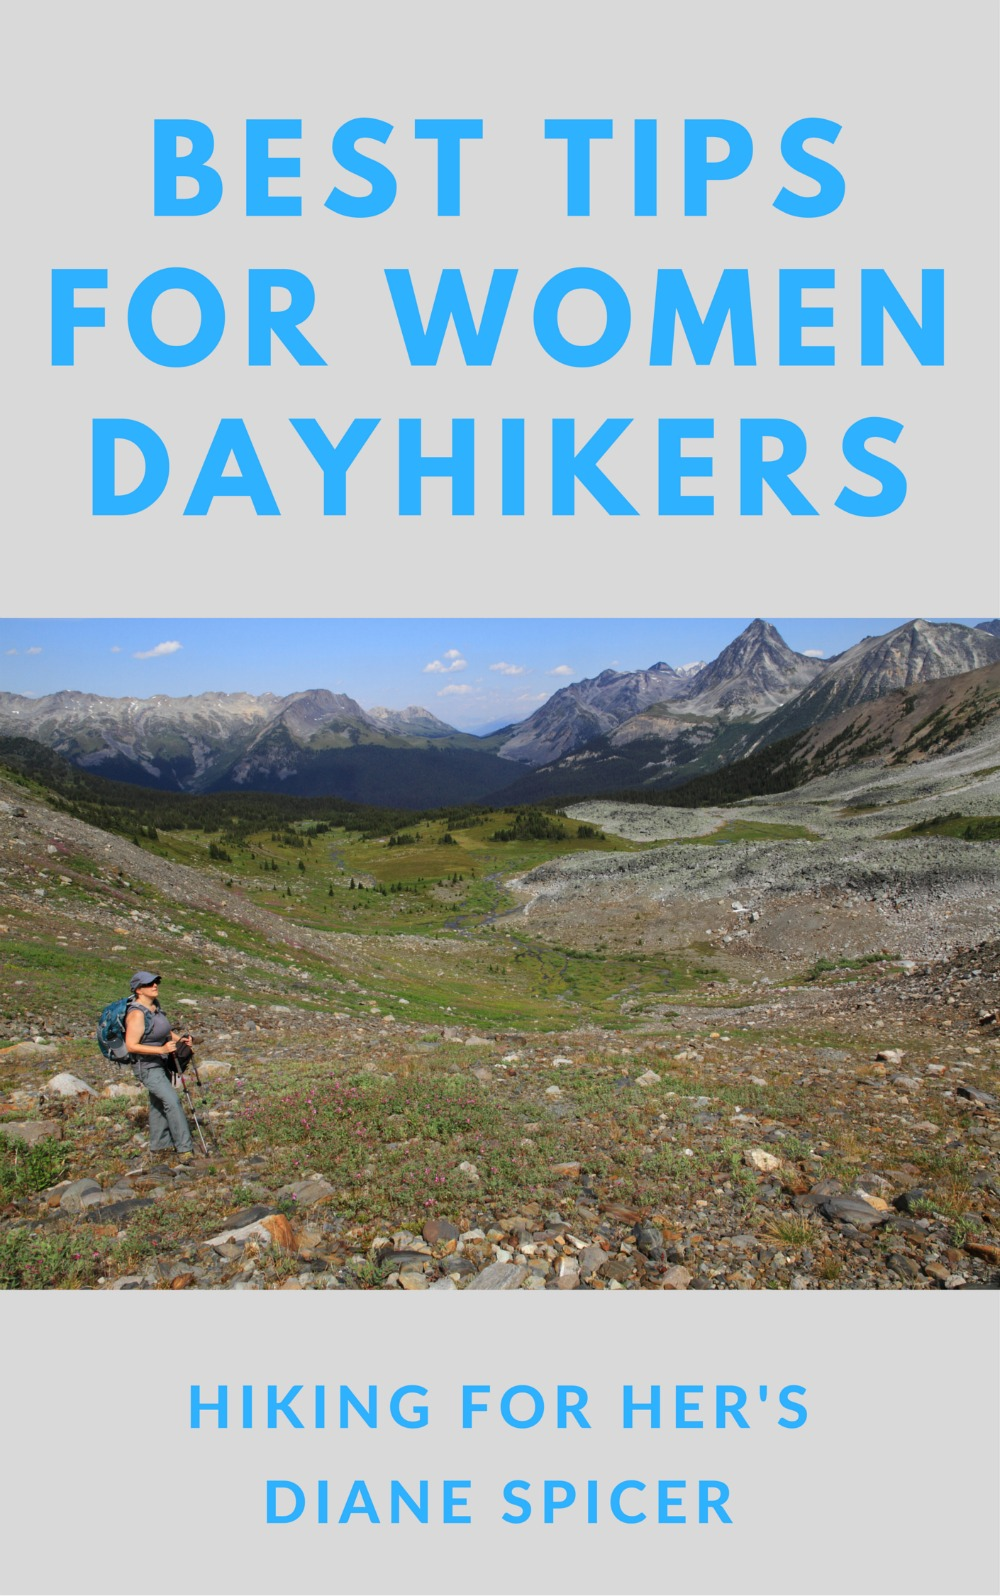 Get trustworthy hiking information from a seasoned female hiker in Dayhiking Tips For Women Hikers by Hiking For Her. #hiking #hikingbook #dayhikes #hikingtips #womenhikers